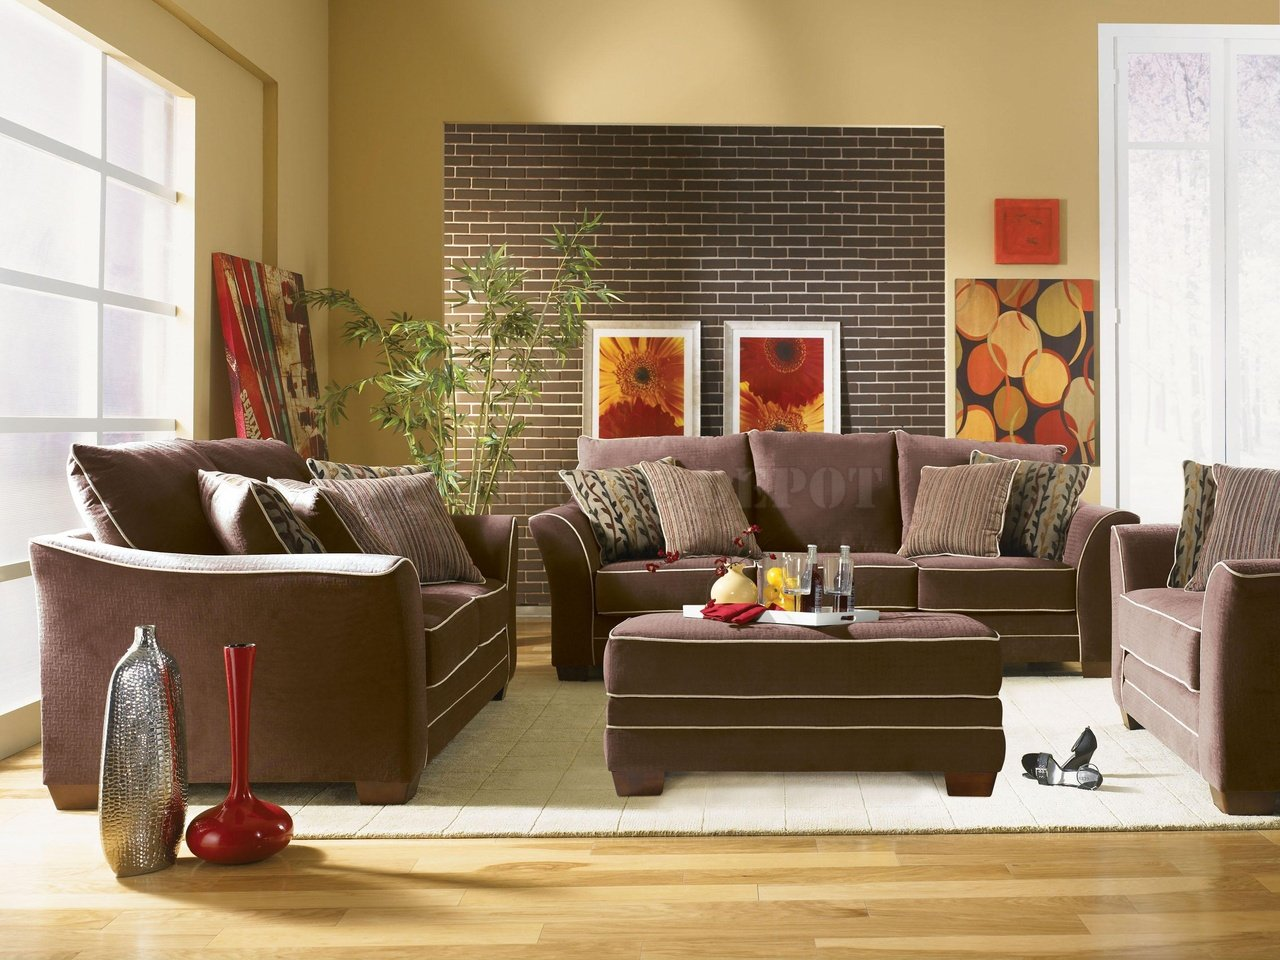 Interior design ideas interior designs home design ideas for Sofa in a small living room